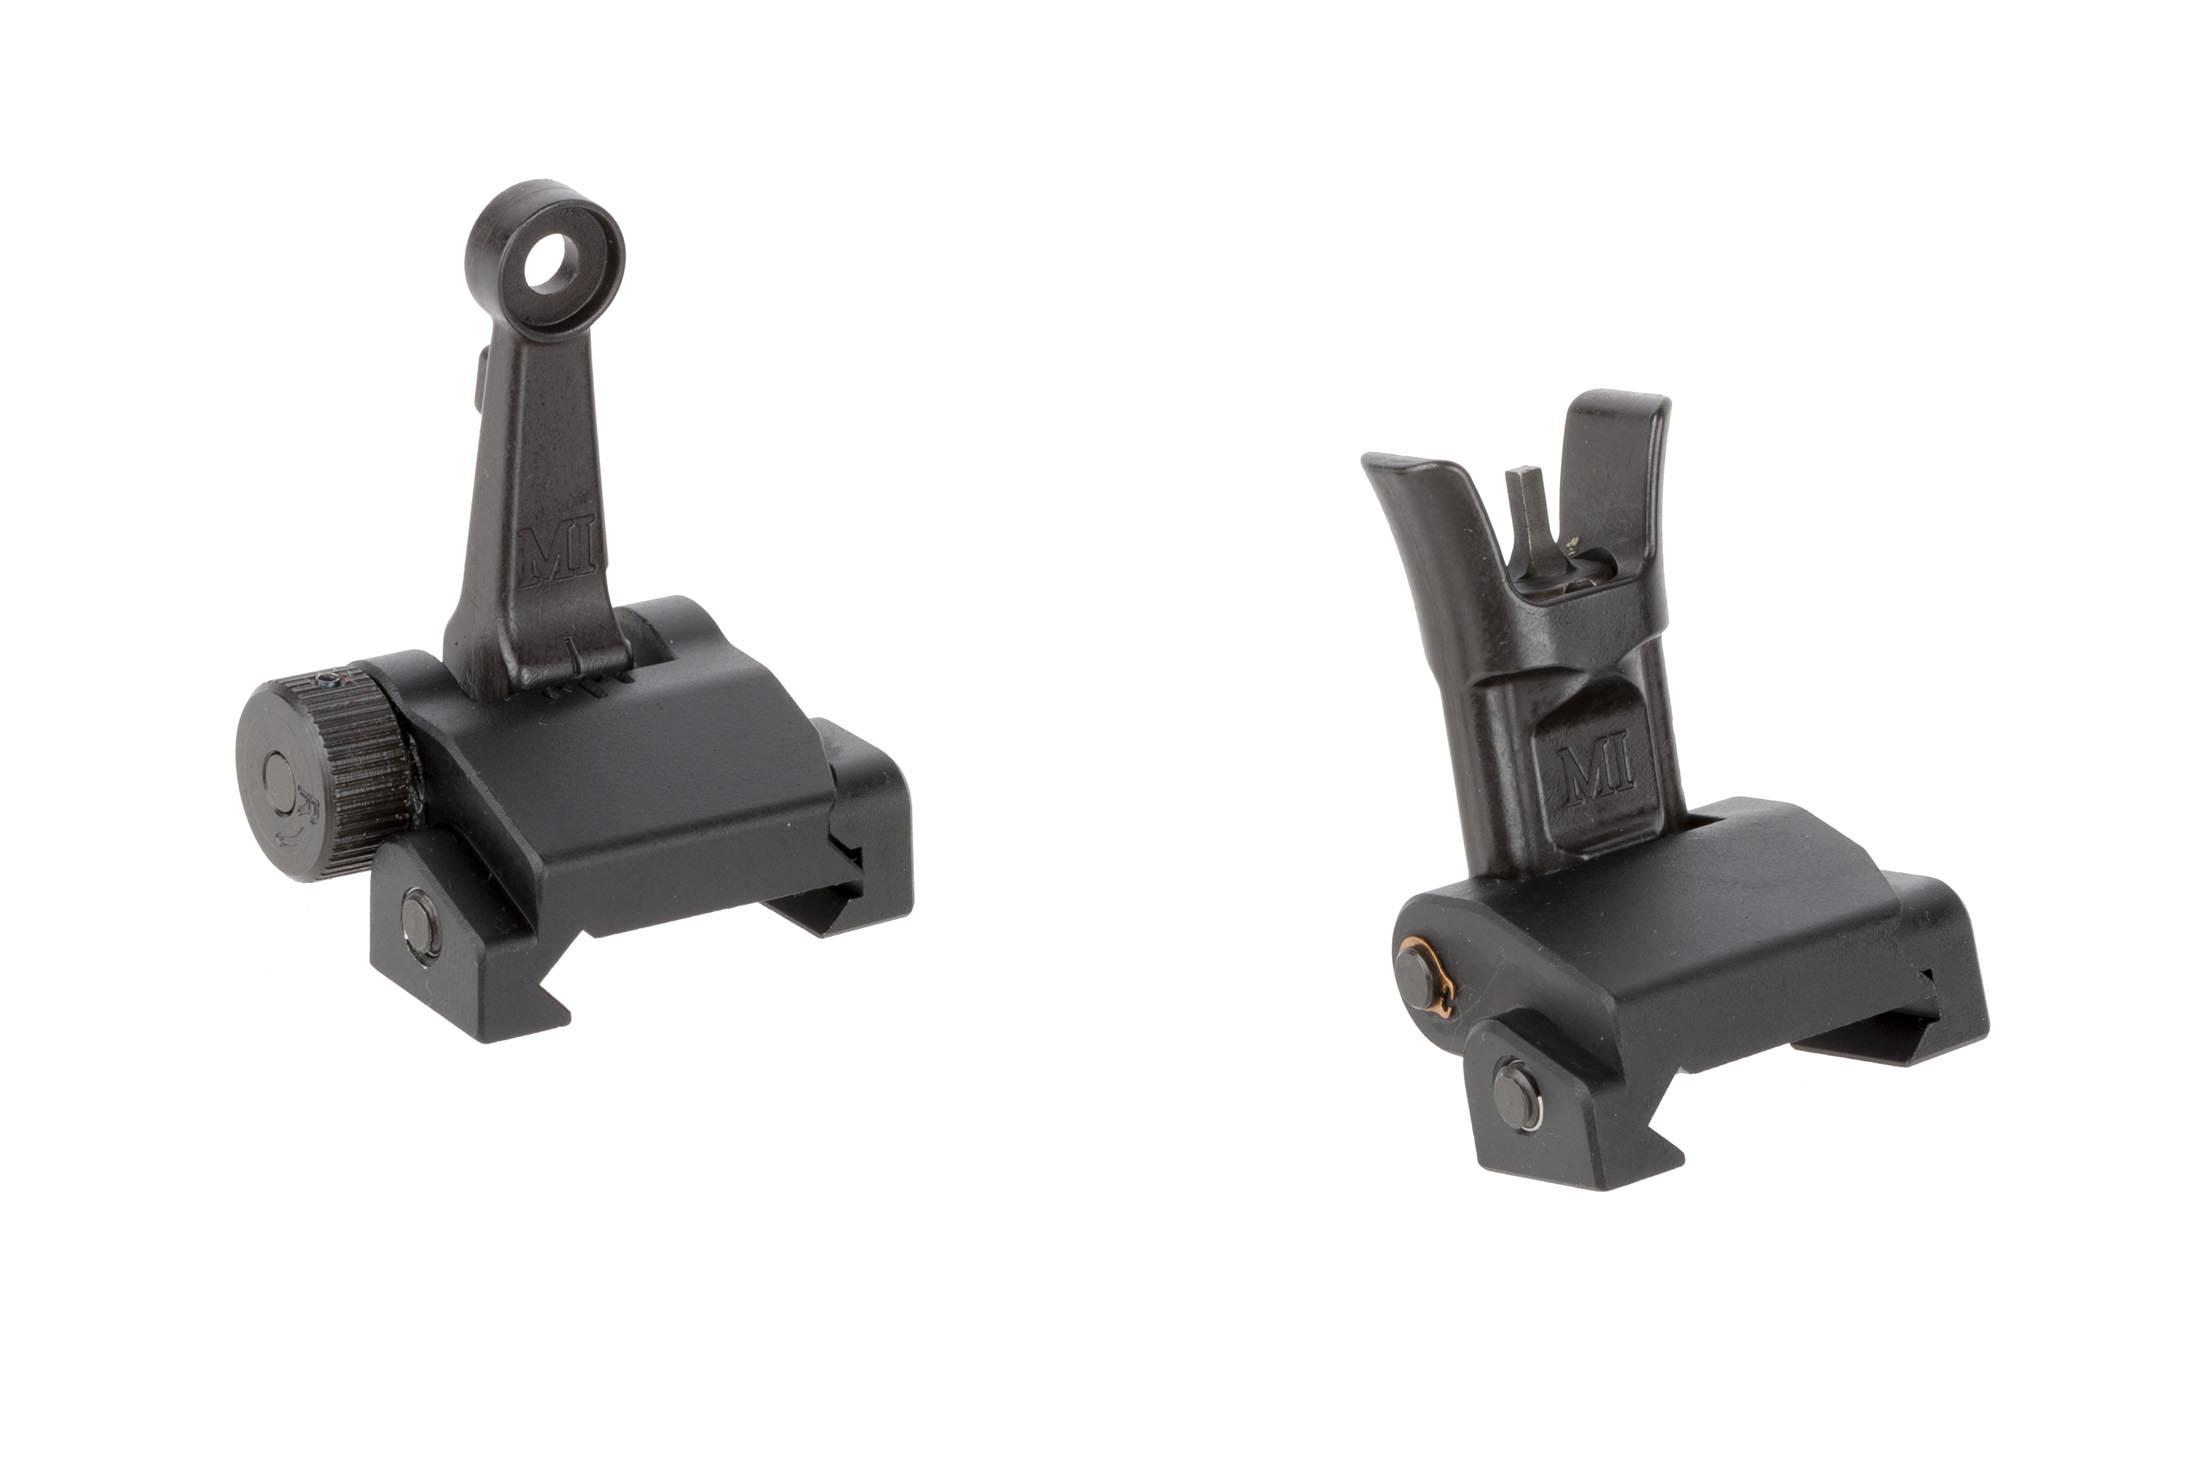 Midwest Industries Combat Rifle Sight Set is a compact folding backup sight set for AR-15s machined from lightweight 6061 aluminum